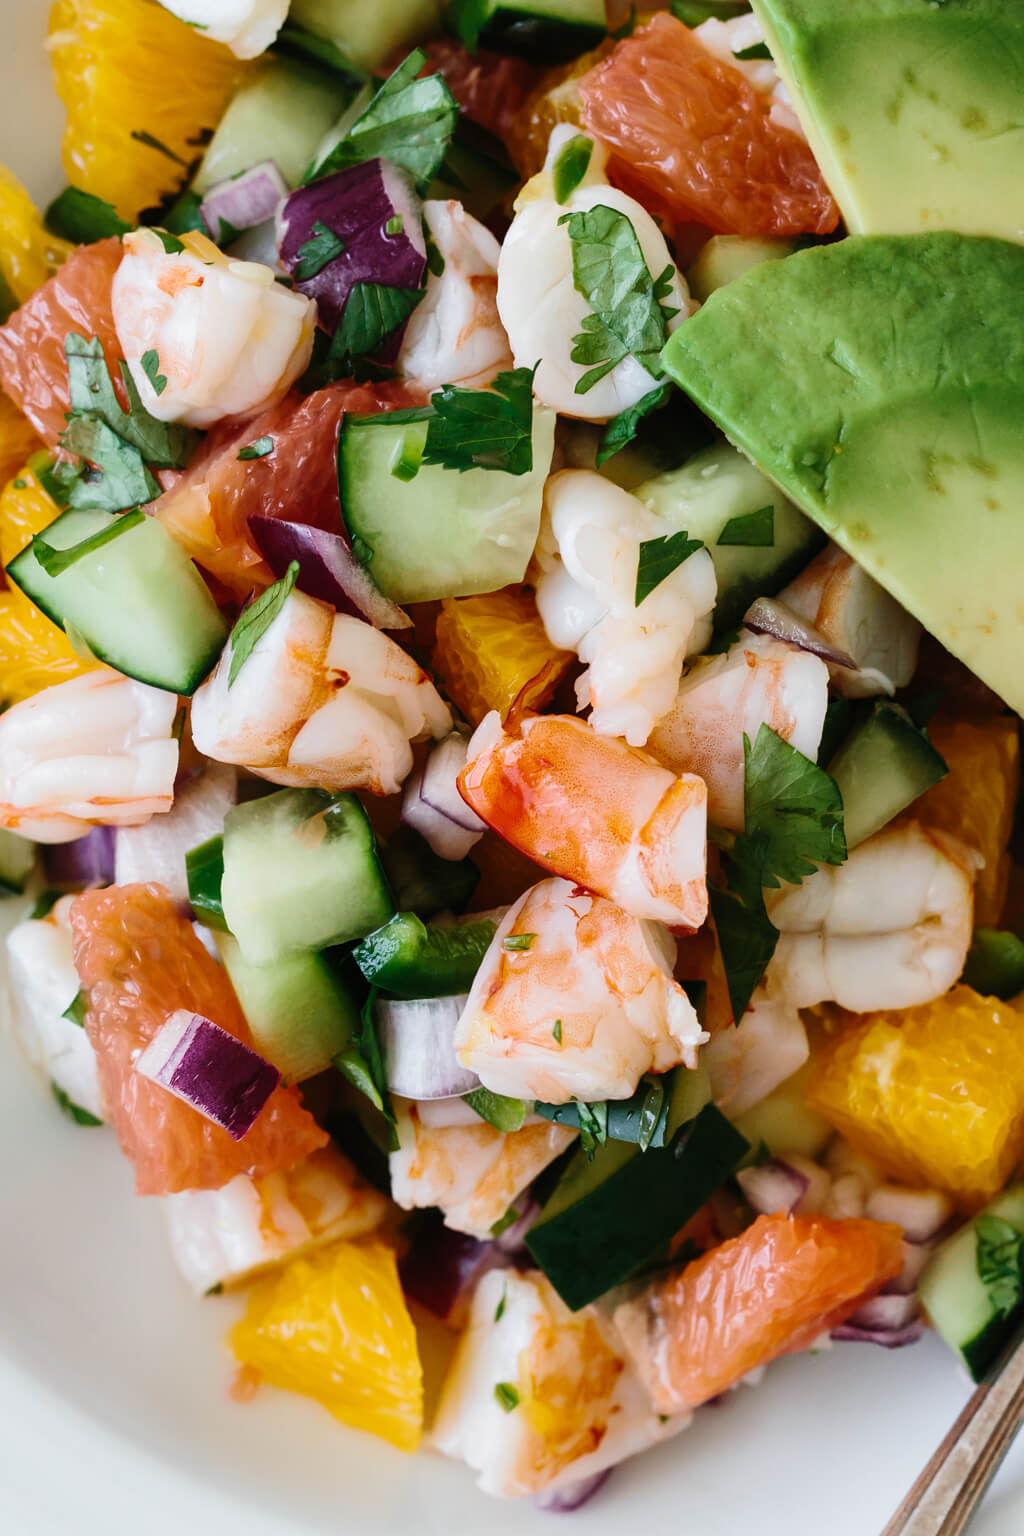 Up close photo of shrimp ceviche recipe ingredients.